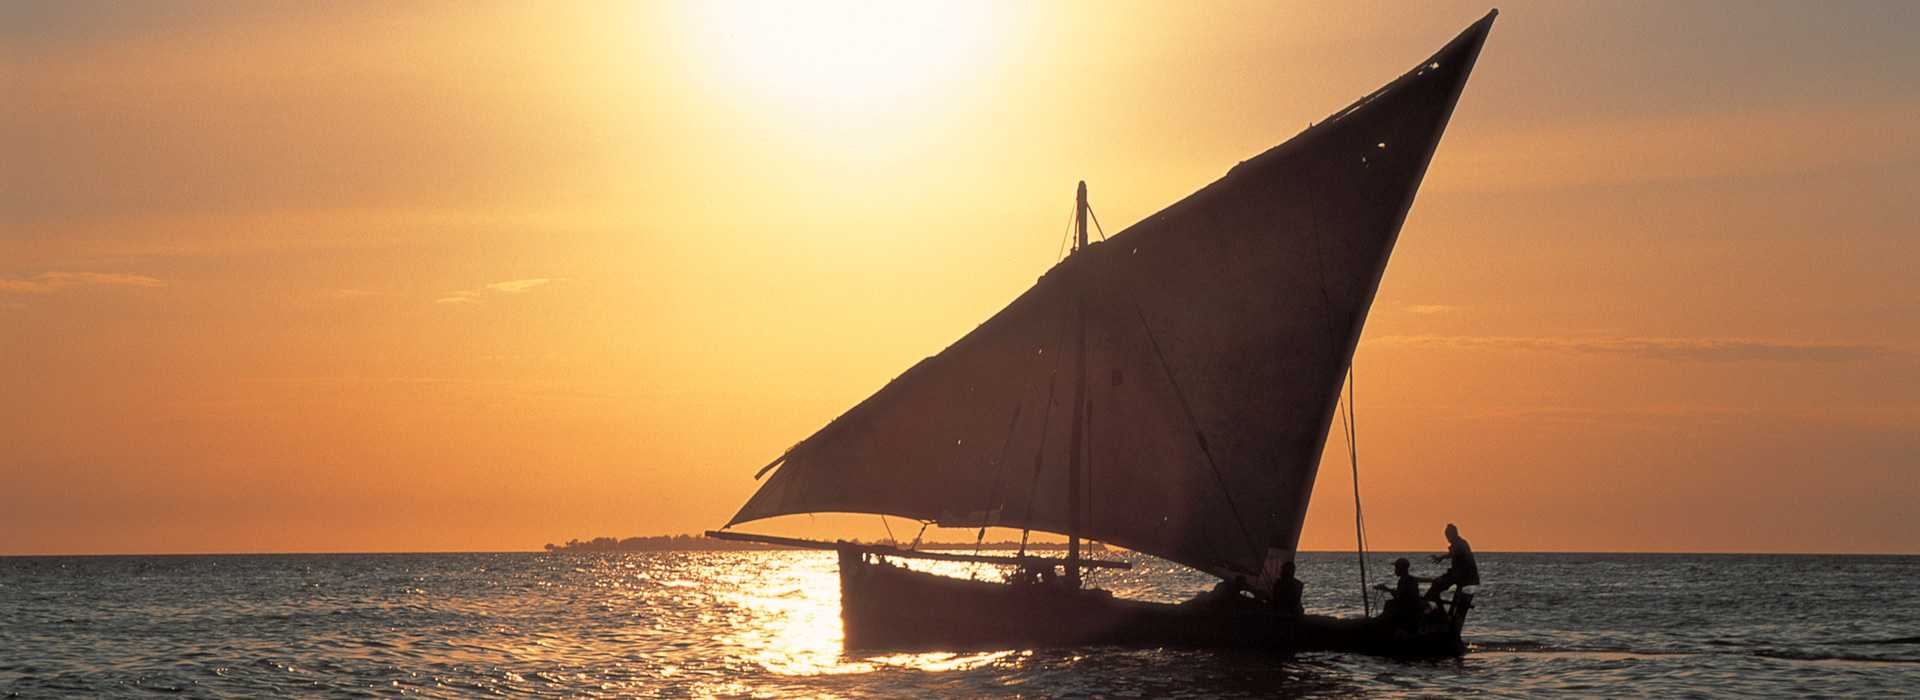 Dhow At Sunset In Zanzibar